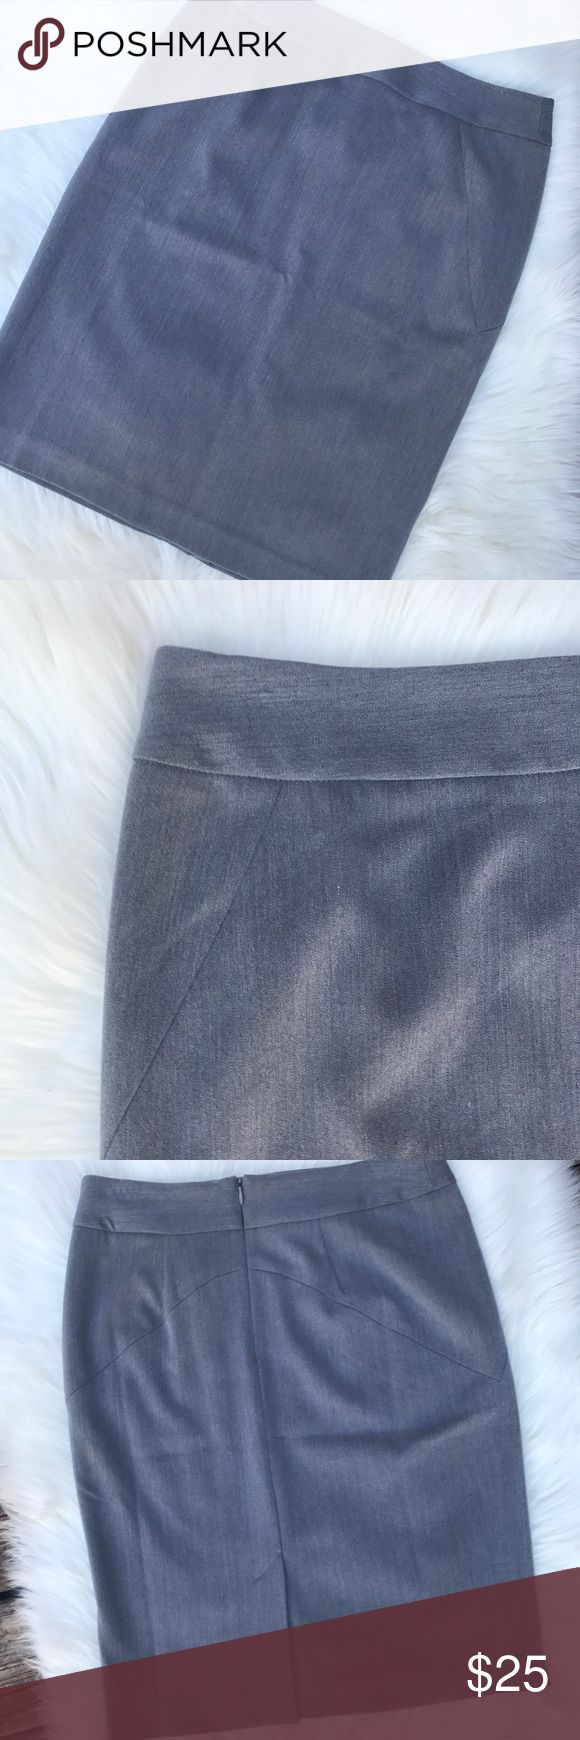 💖 Grace Elements Gray Pencil Skirt 4 Practically brand new. I'm not sure I even wore this once. Grace Elements Skirts Pencil